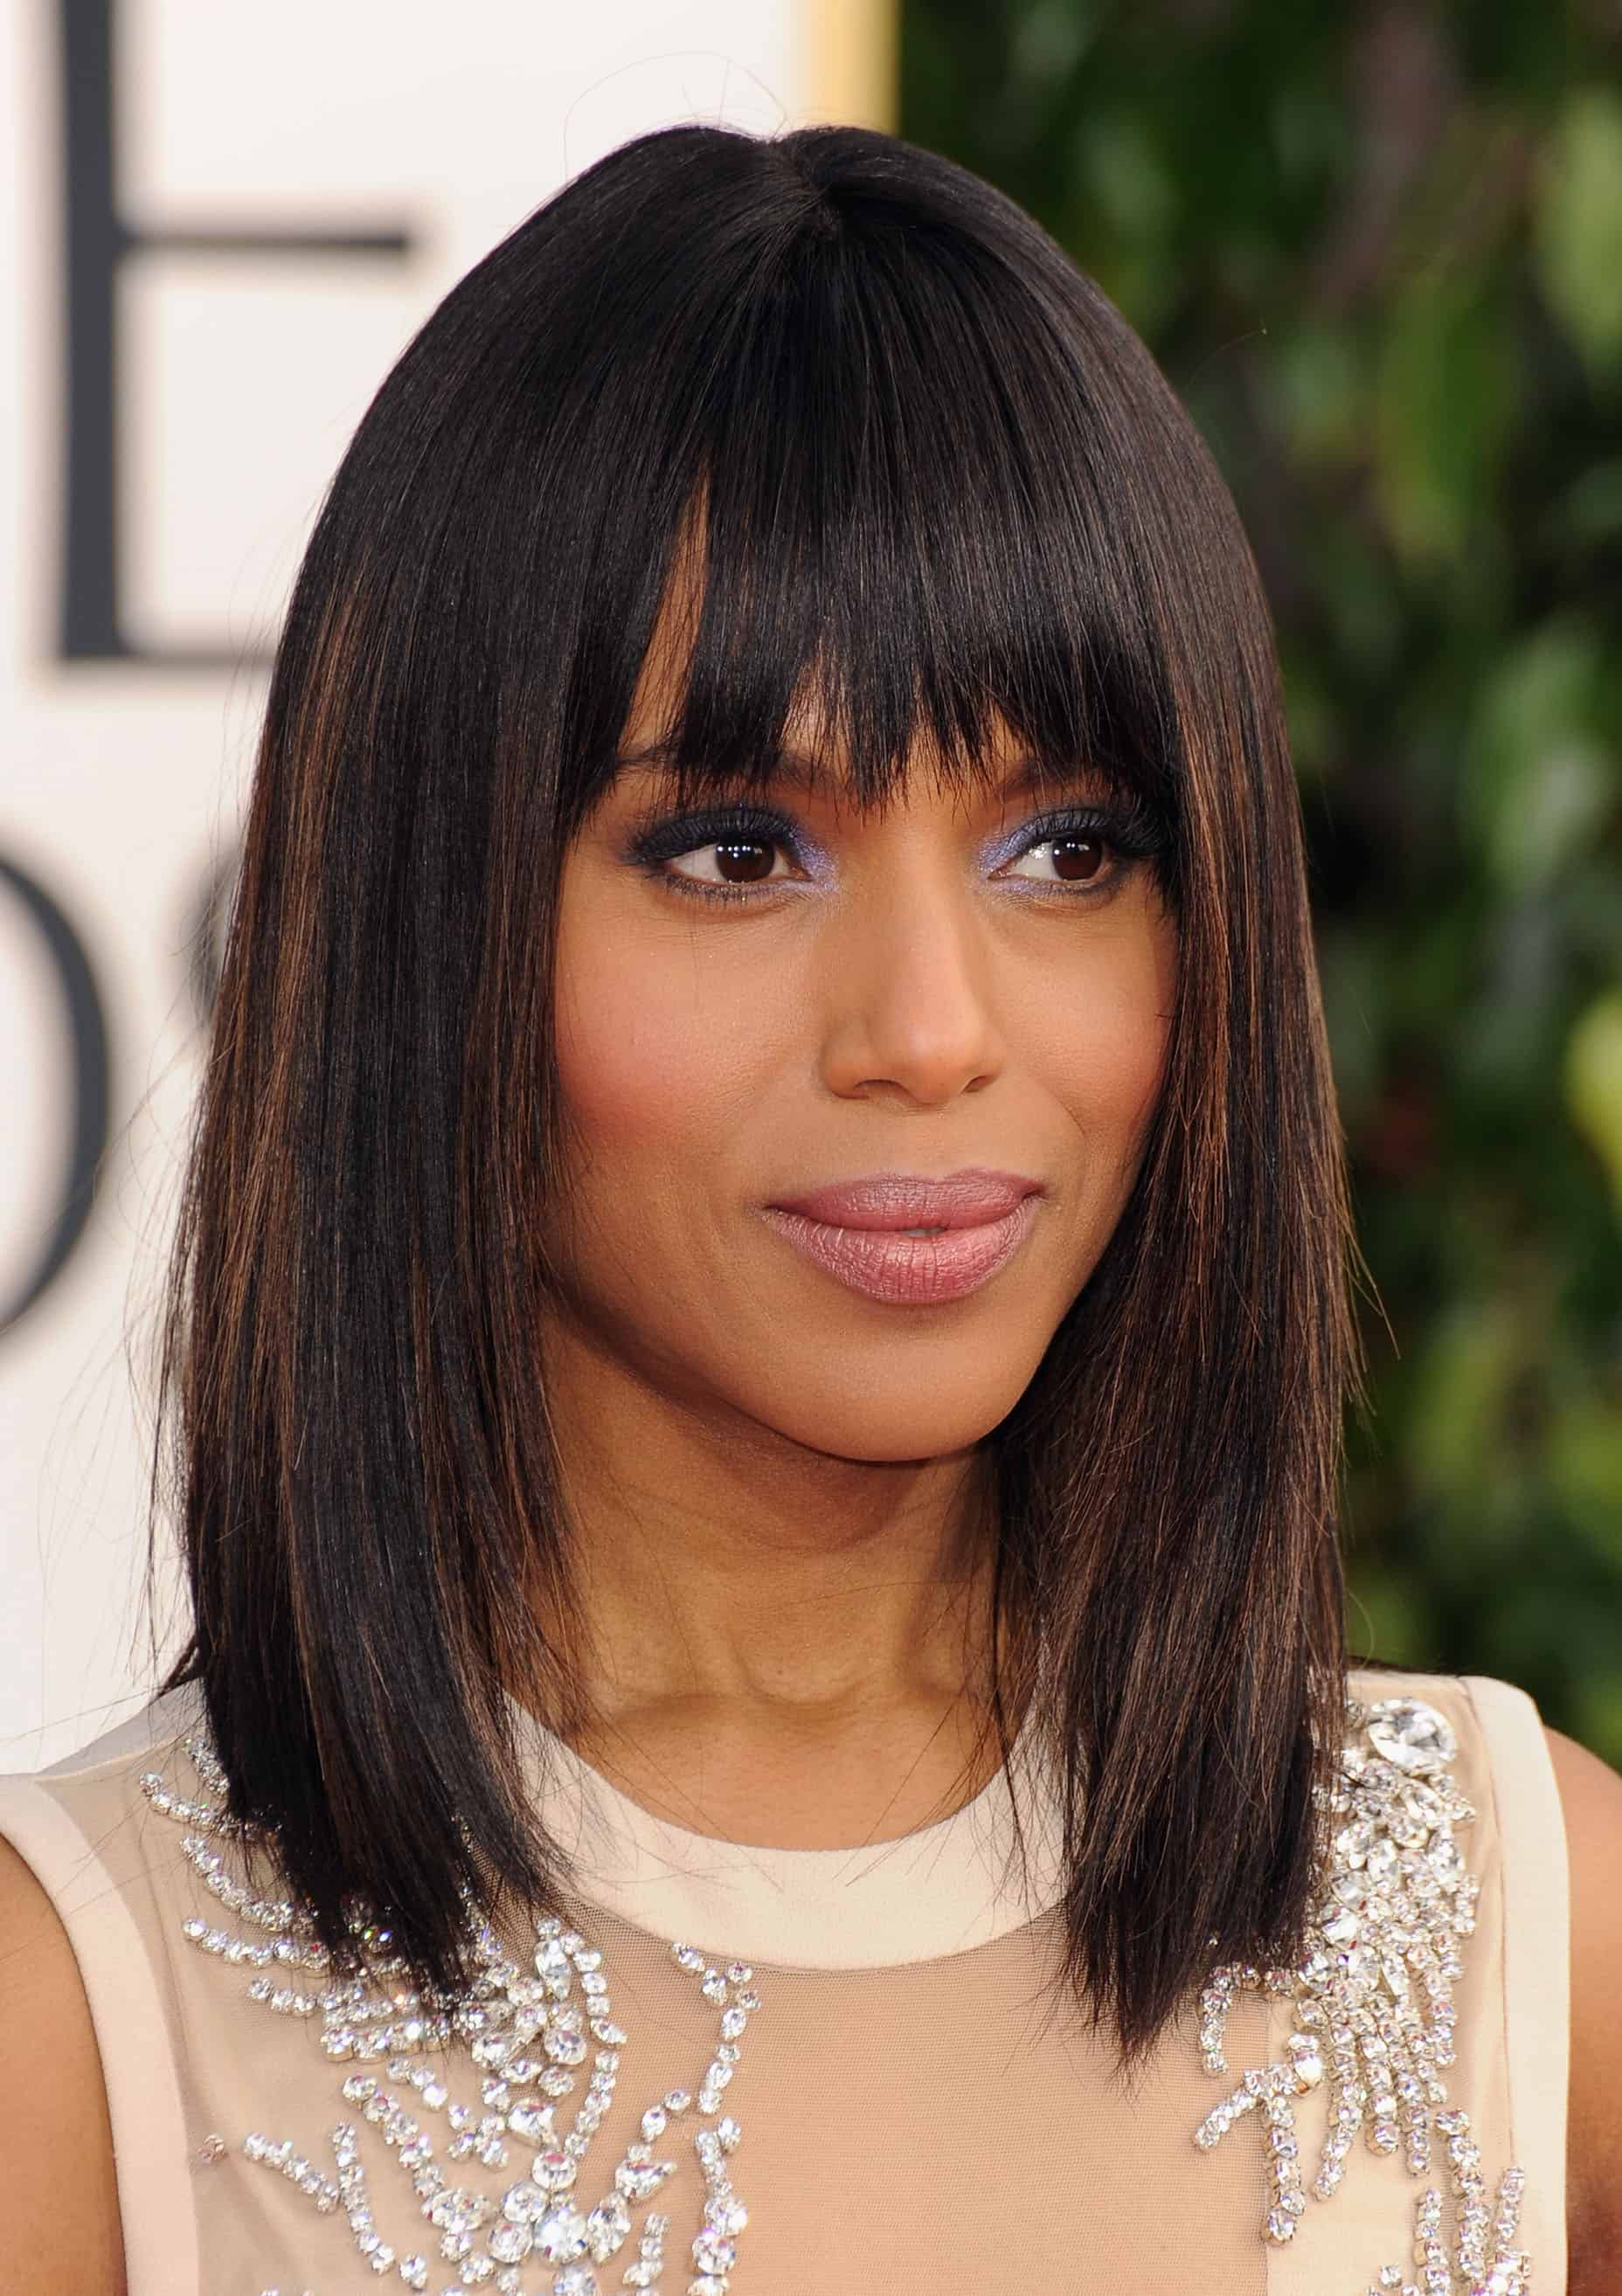 Kerry-Washington-at-the-2013-Golden-Globes-makeup-hair